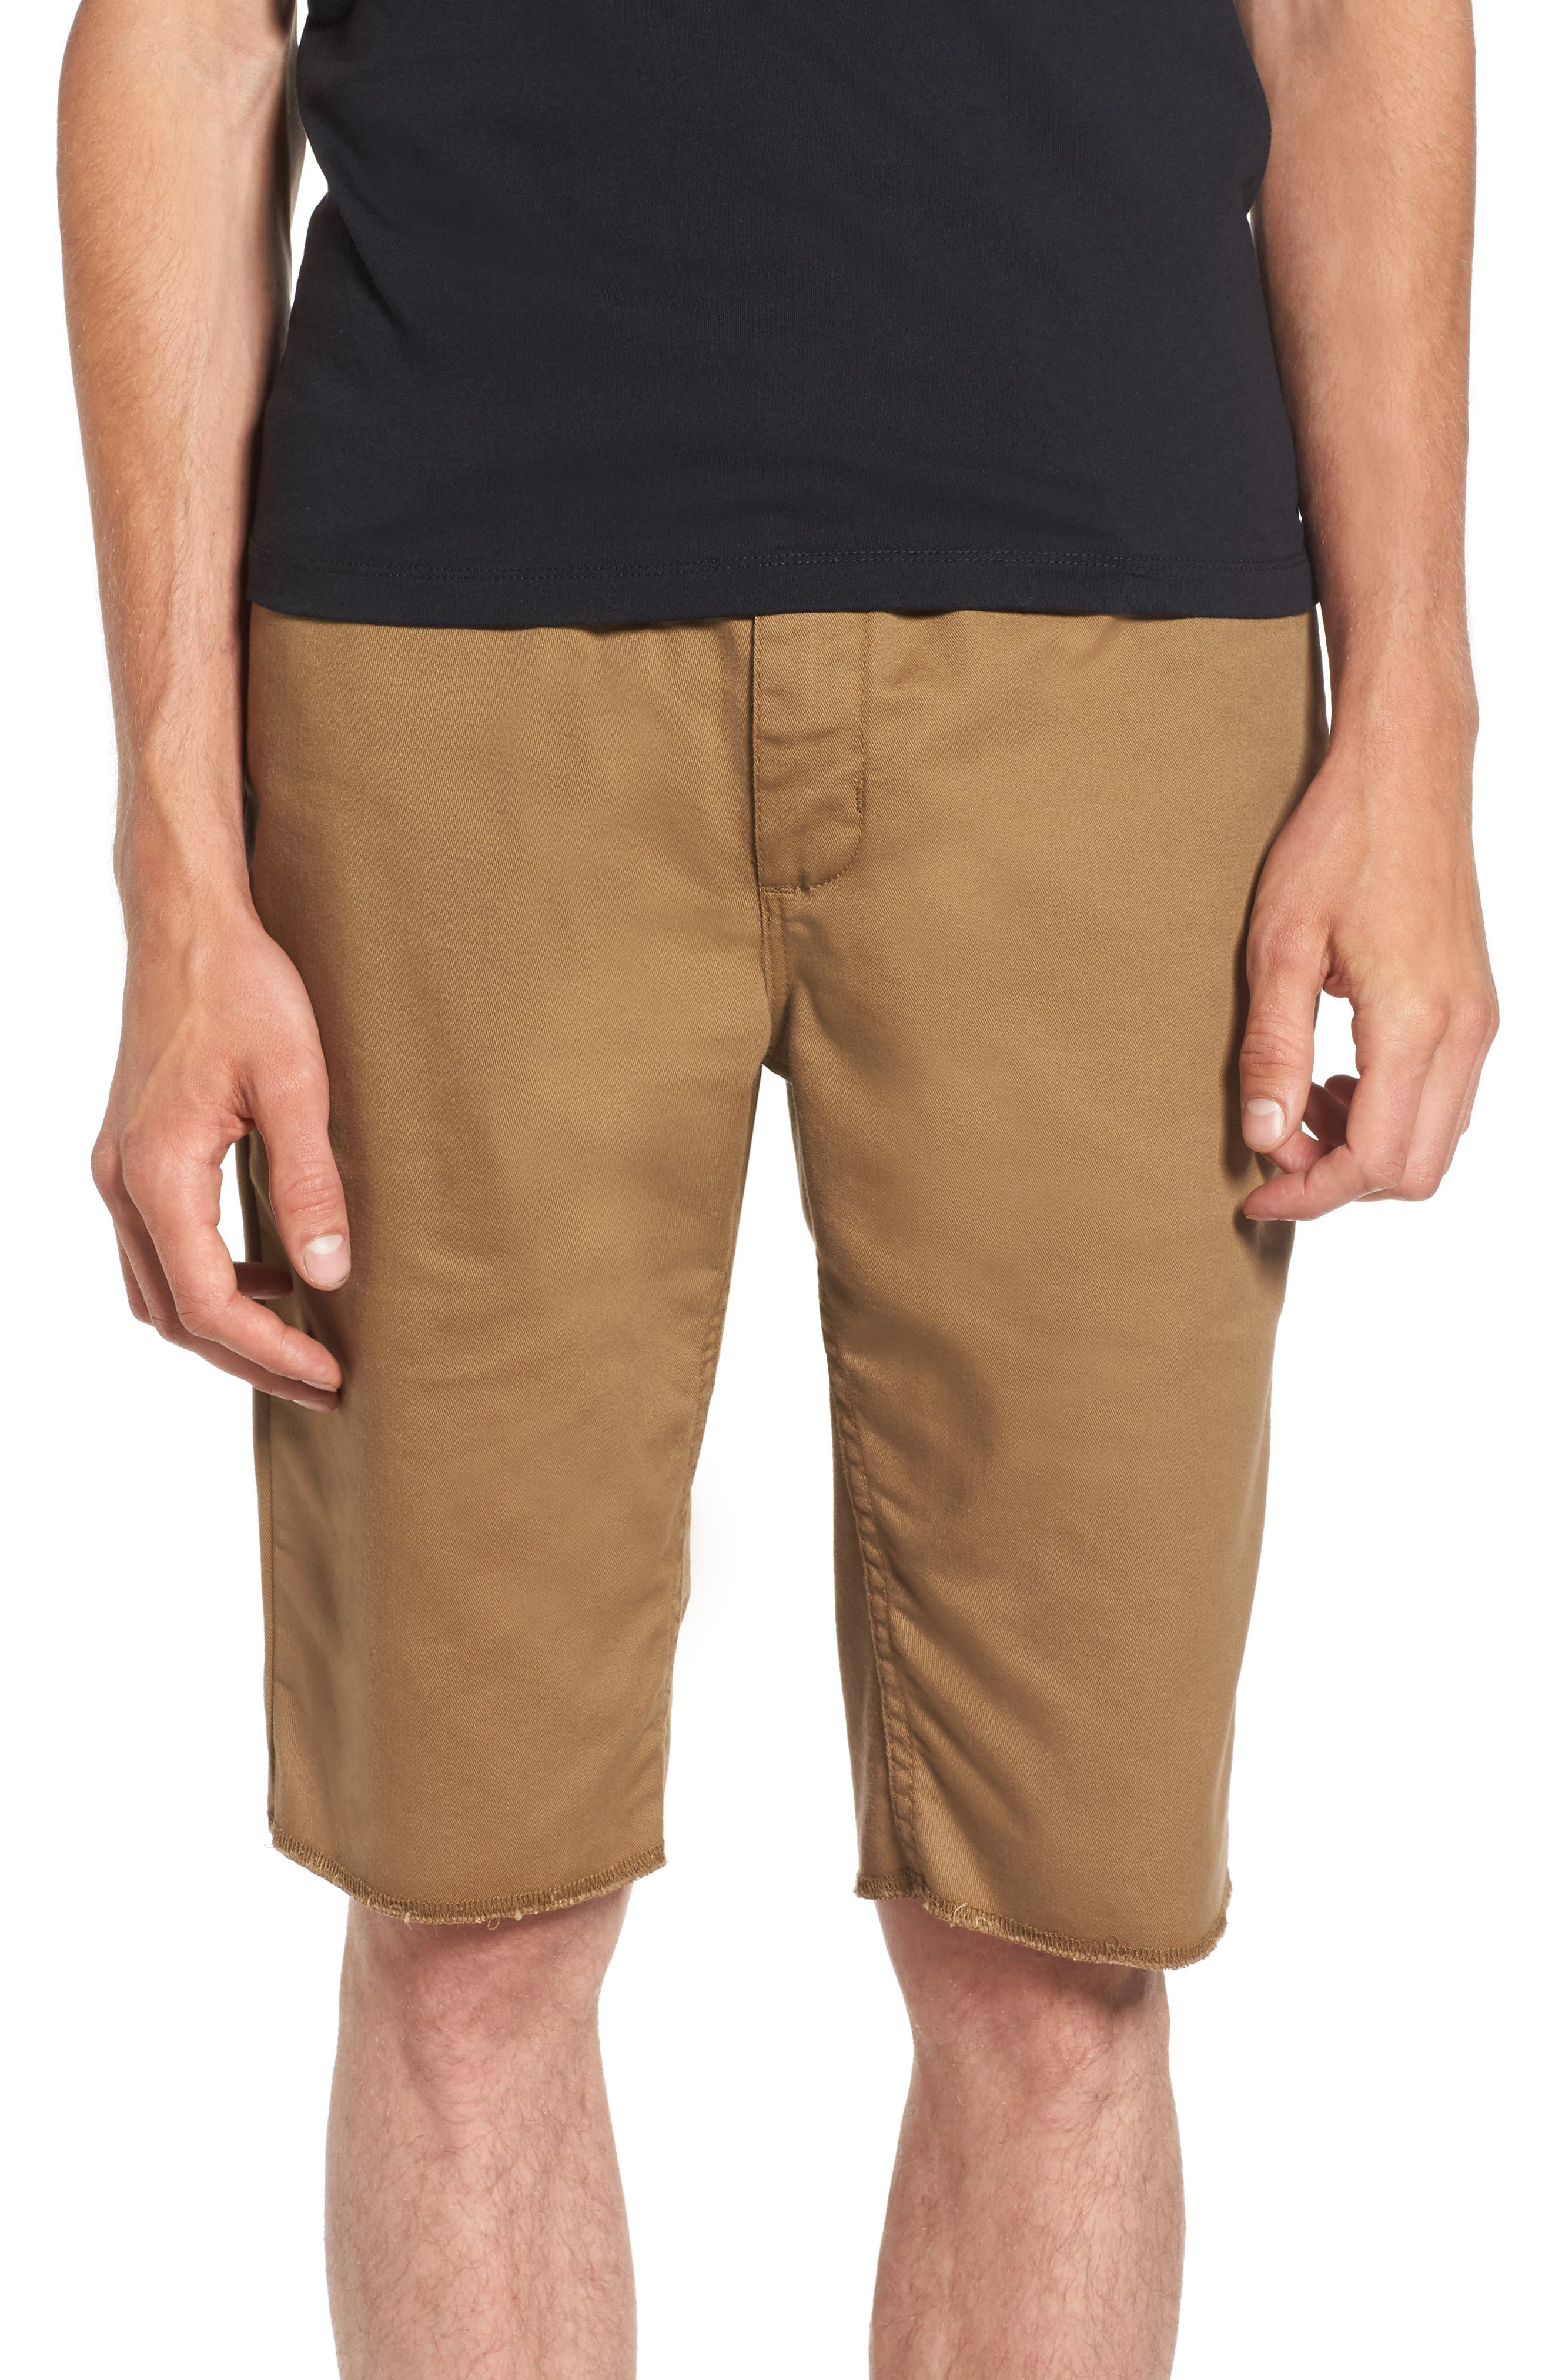 Alternate Image 1 Selected - Vans Covina II - Anthony Van Engelen Twill Shorts